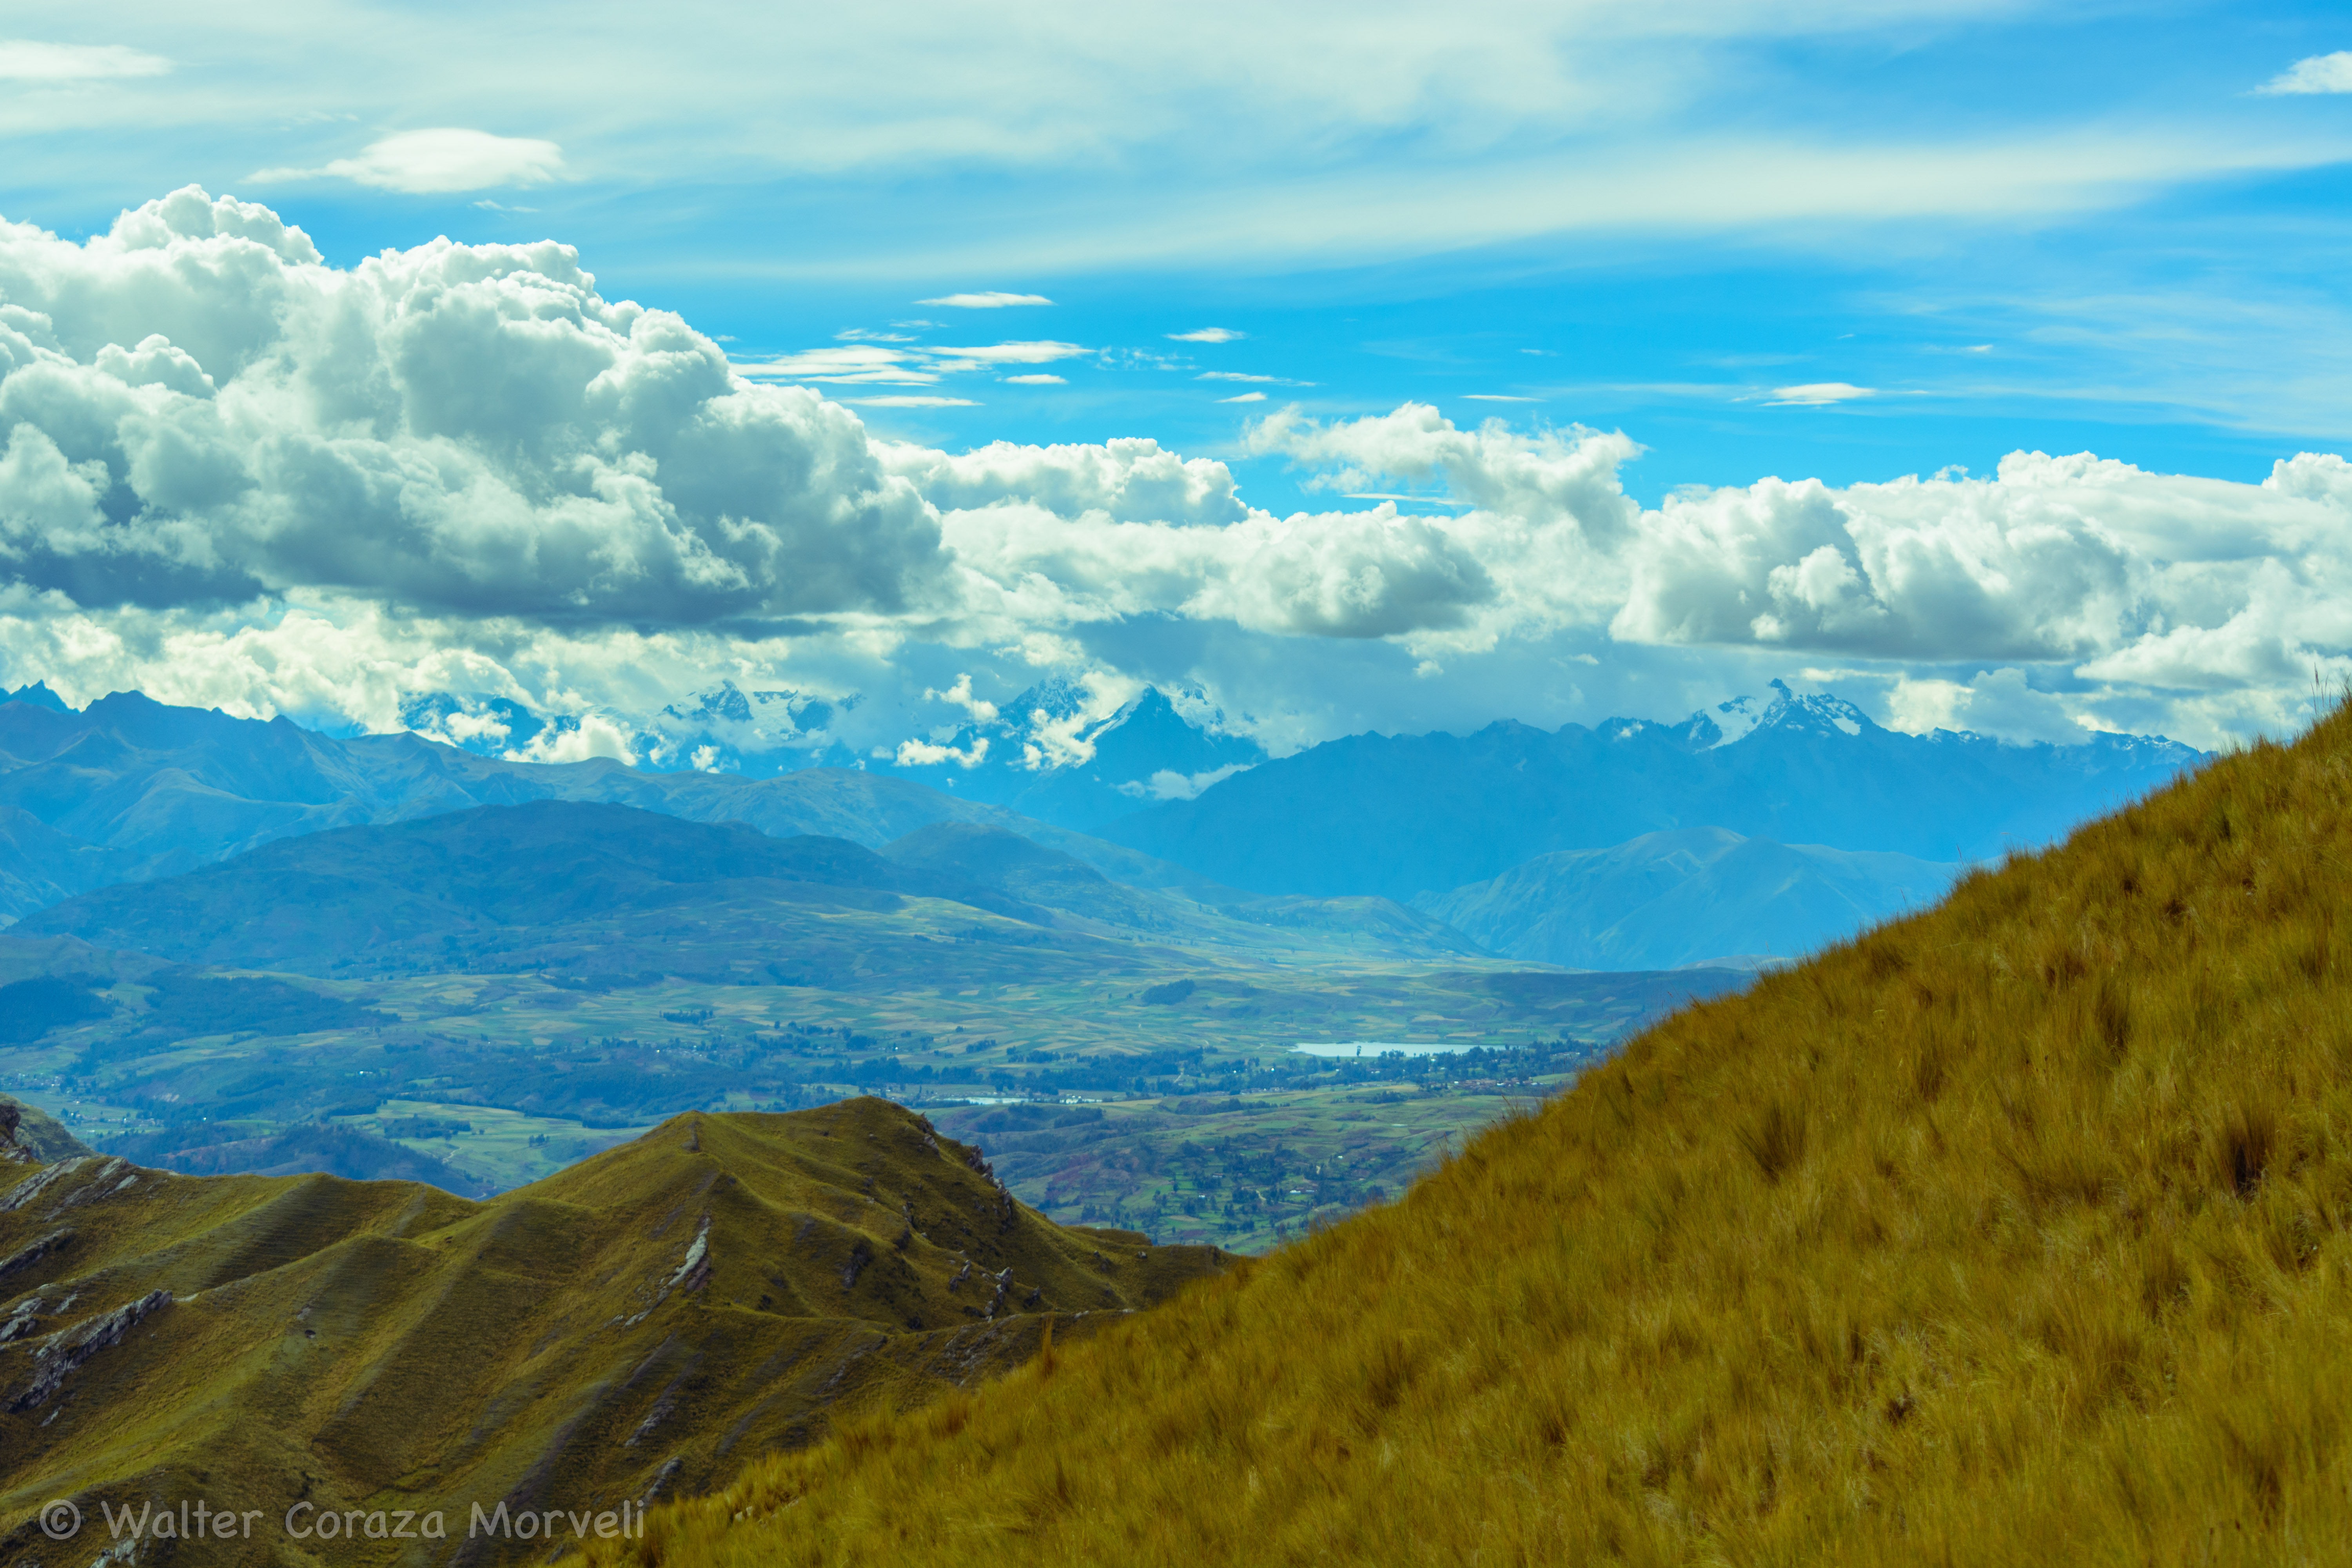 A View of Cusco's Valley from Mama Simona Mountain